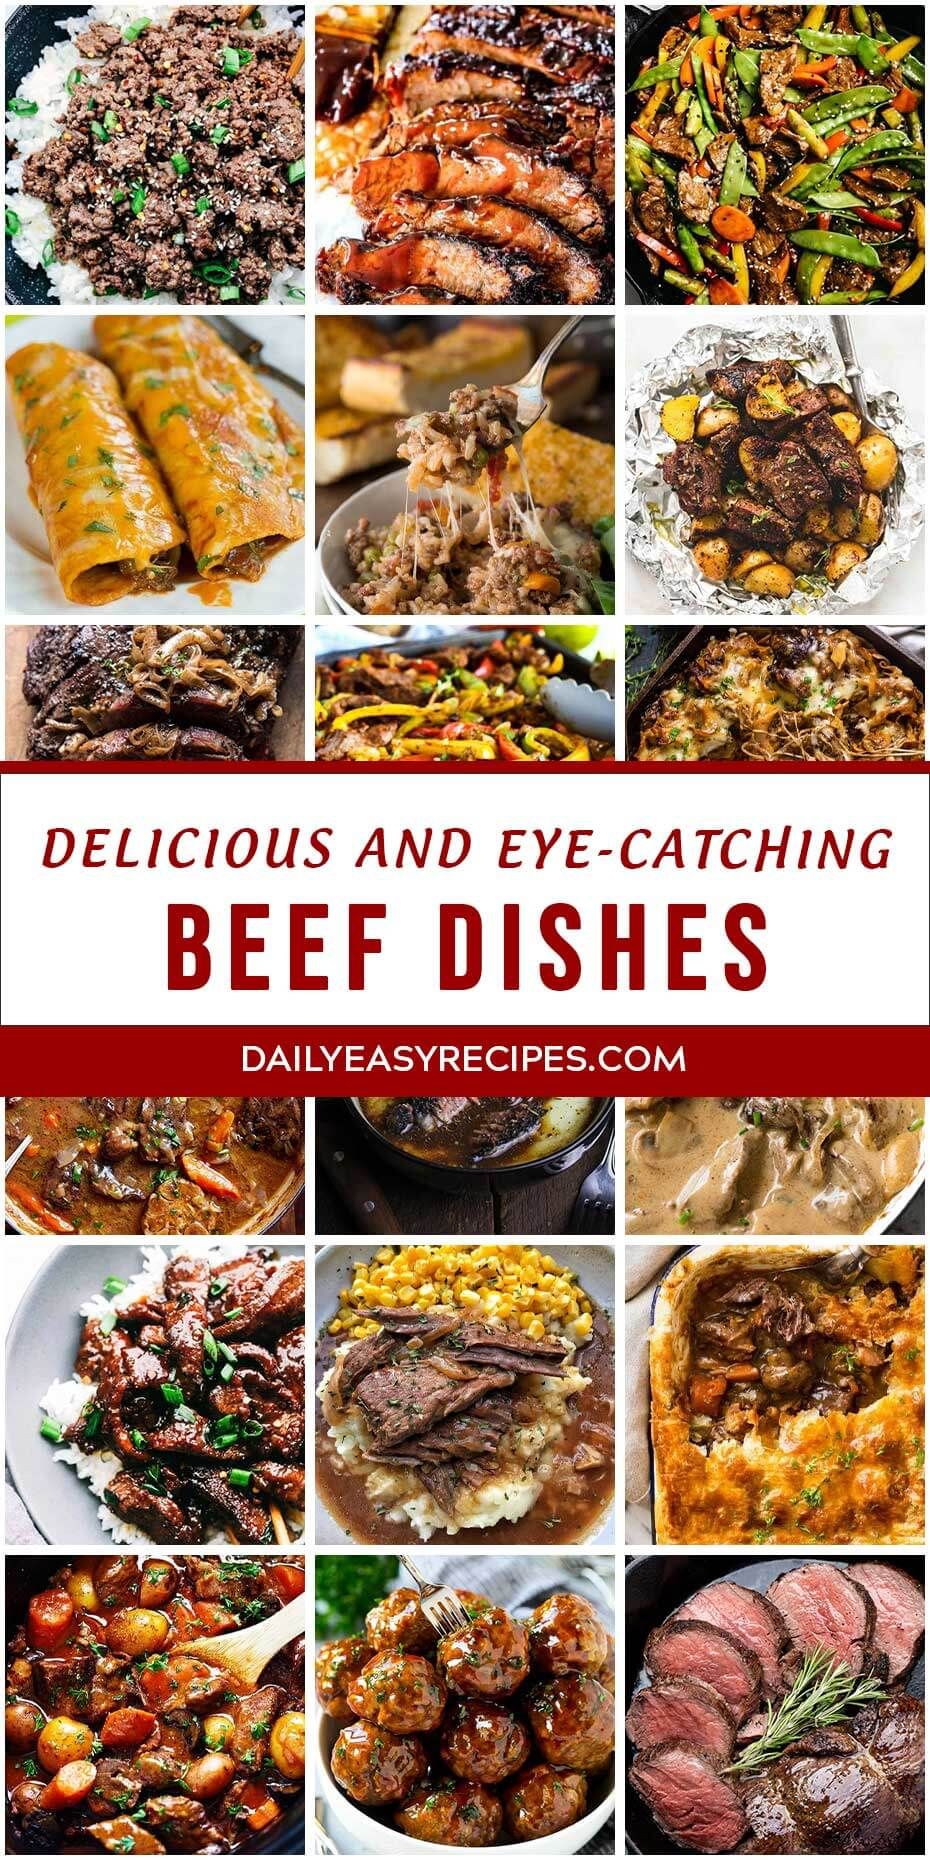 30 Delicious and Eye-Catching Beef Dishes